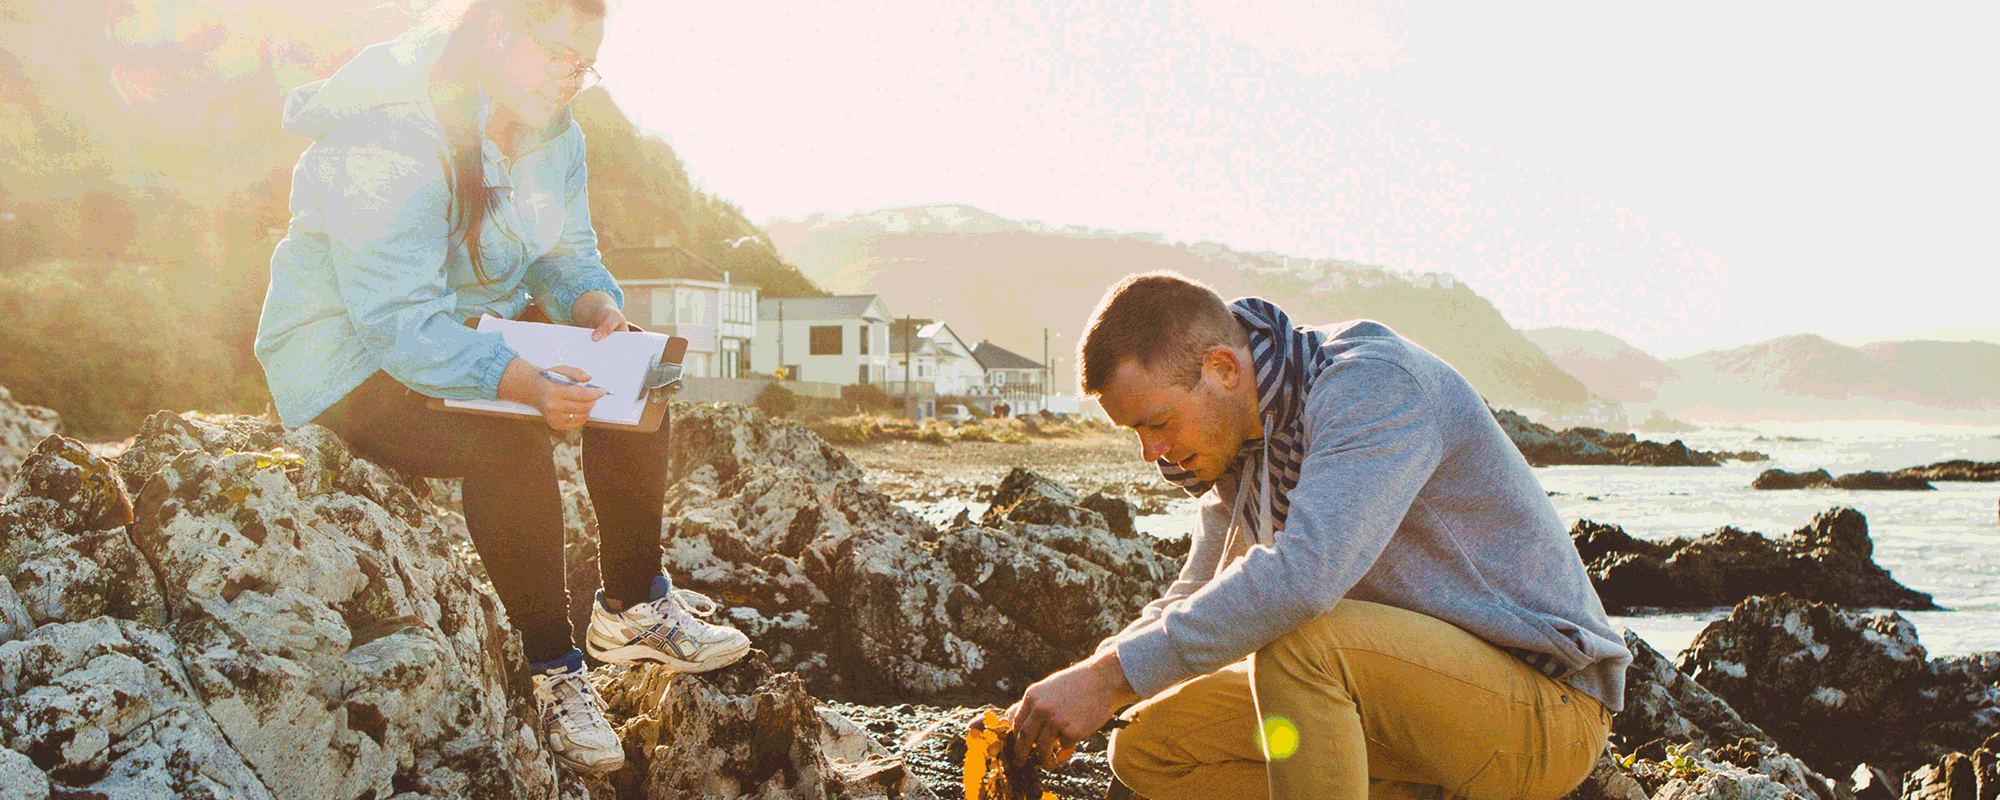 Two research students work are searching through coastal rocks holding a piece of algae.